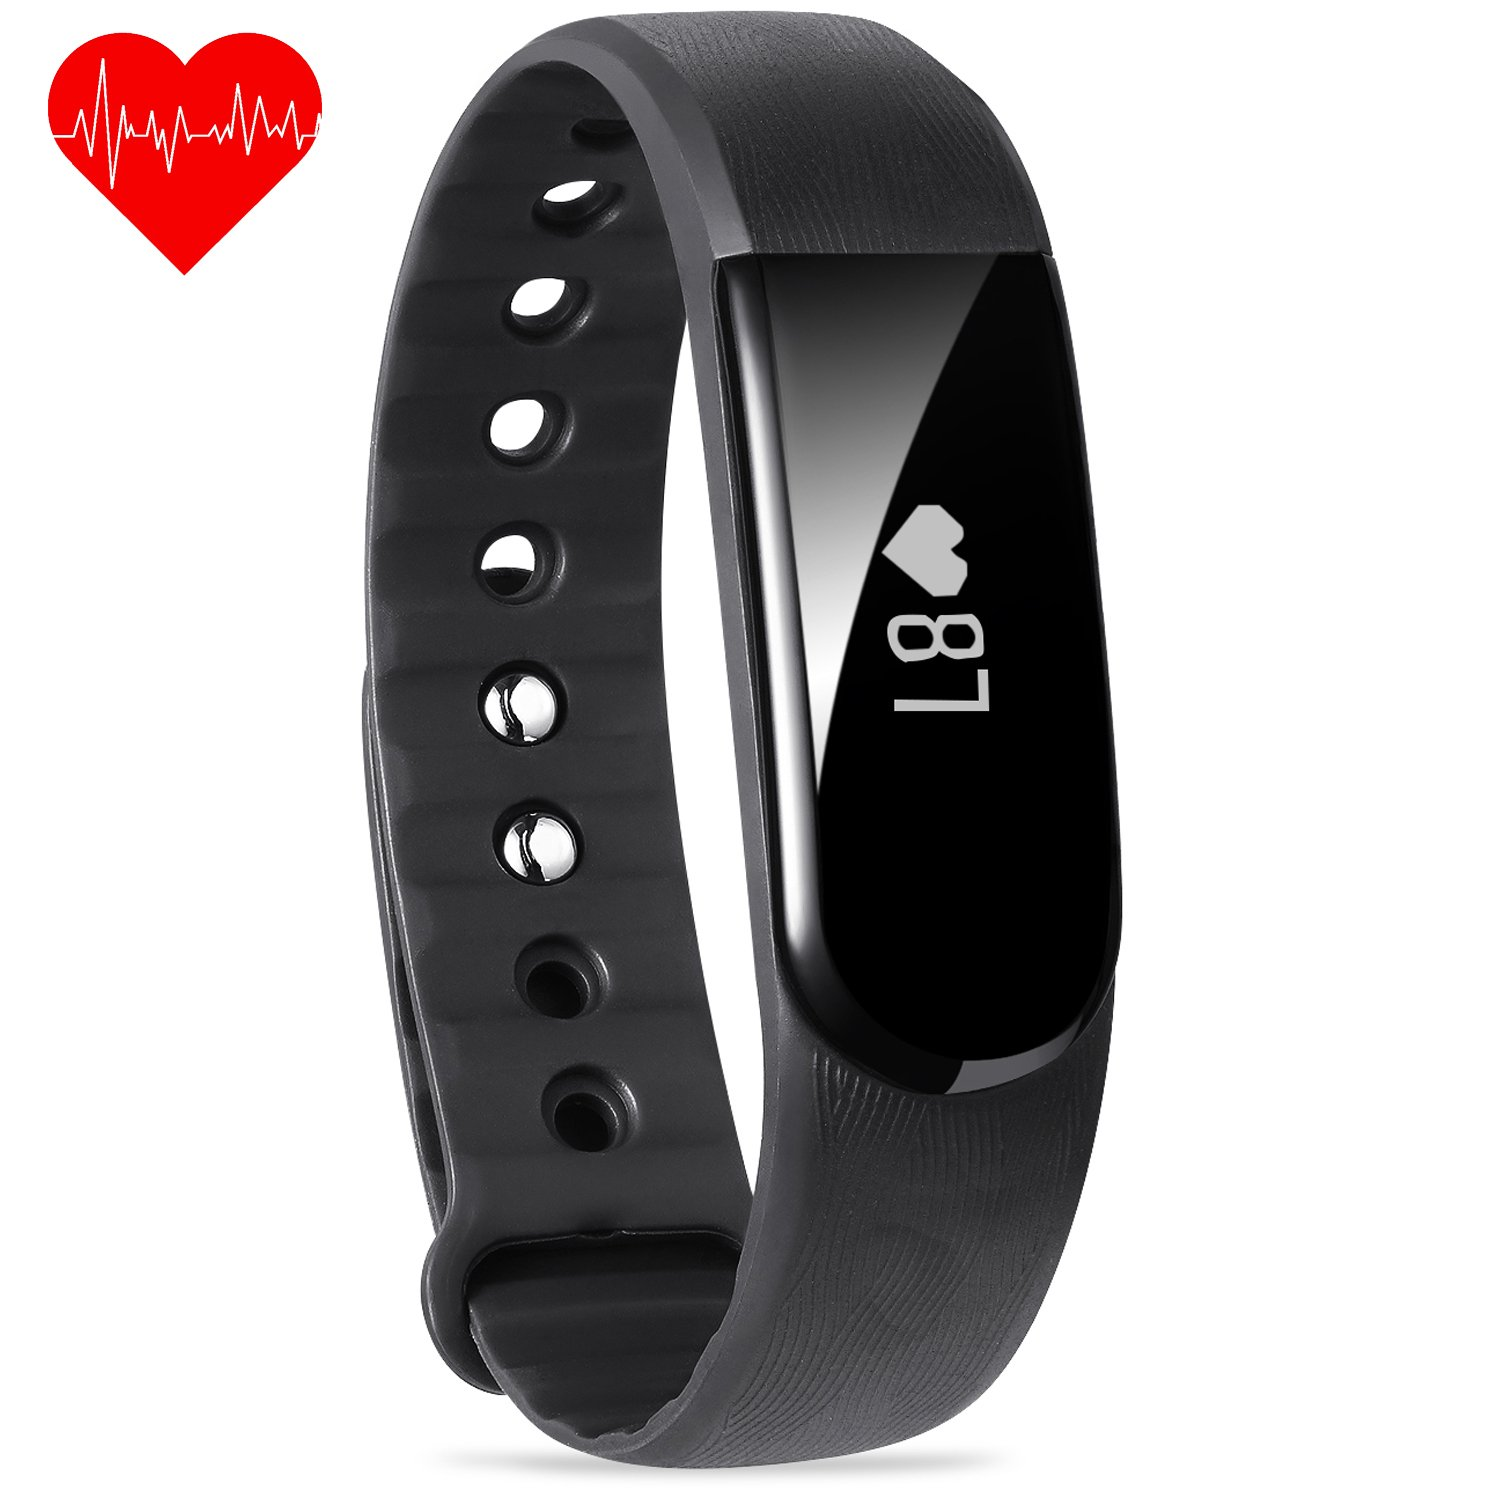 pin tracker watch dbpower activity watches heart with monitor hr fitness rate